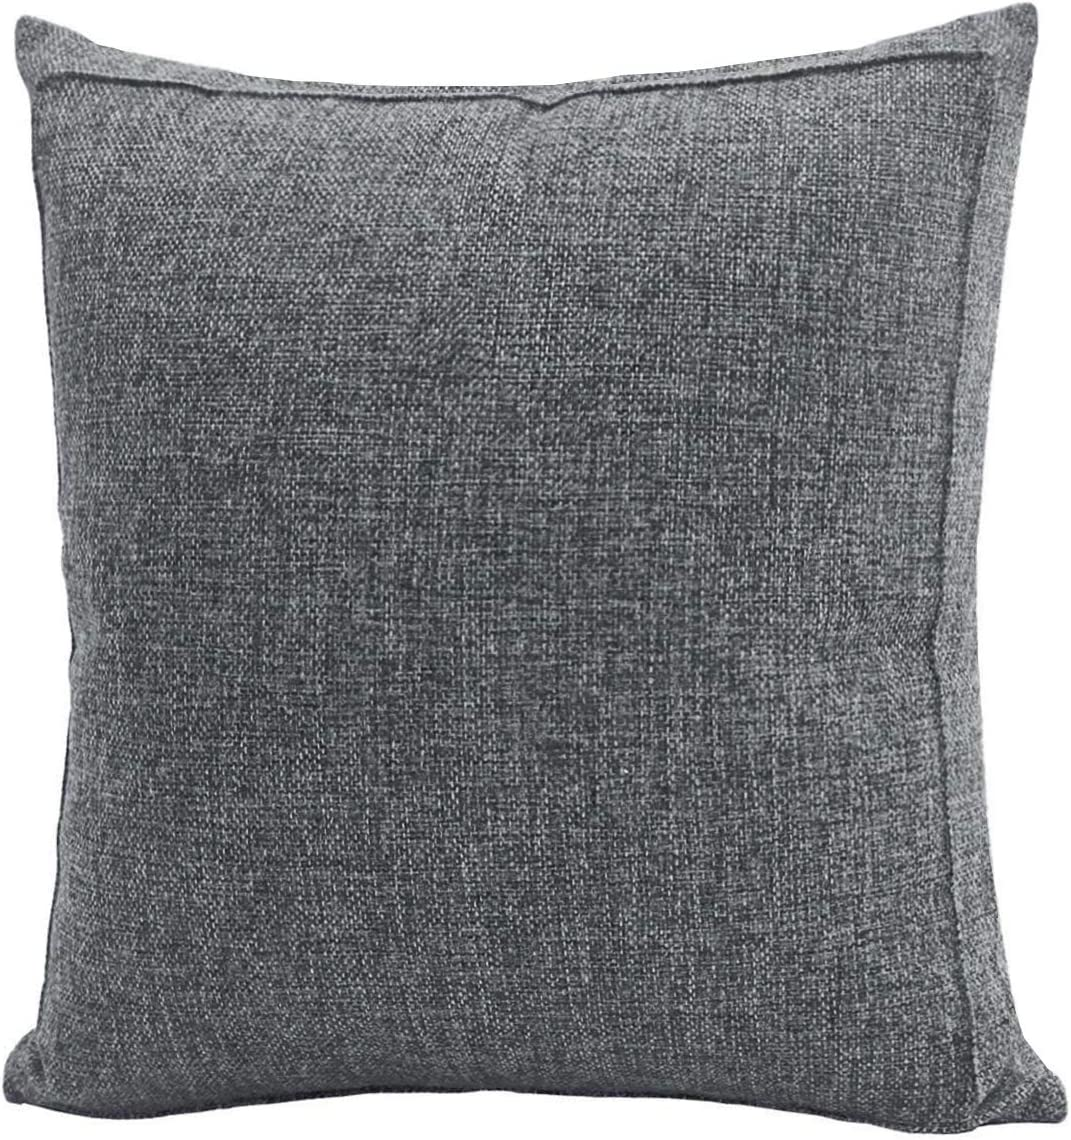 Jepeak Burlap Linen Throw Pillow Cover Cushion Case, Farmhouse Modern Decorative Solid Square Thickened Pillow Case for Sofa Couch (20 x 20 inches, Charcoal Grey)